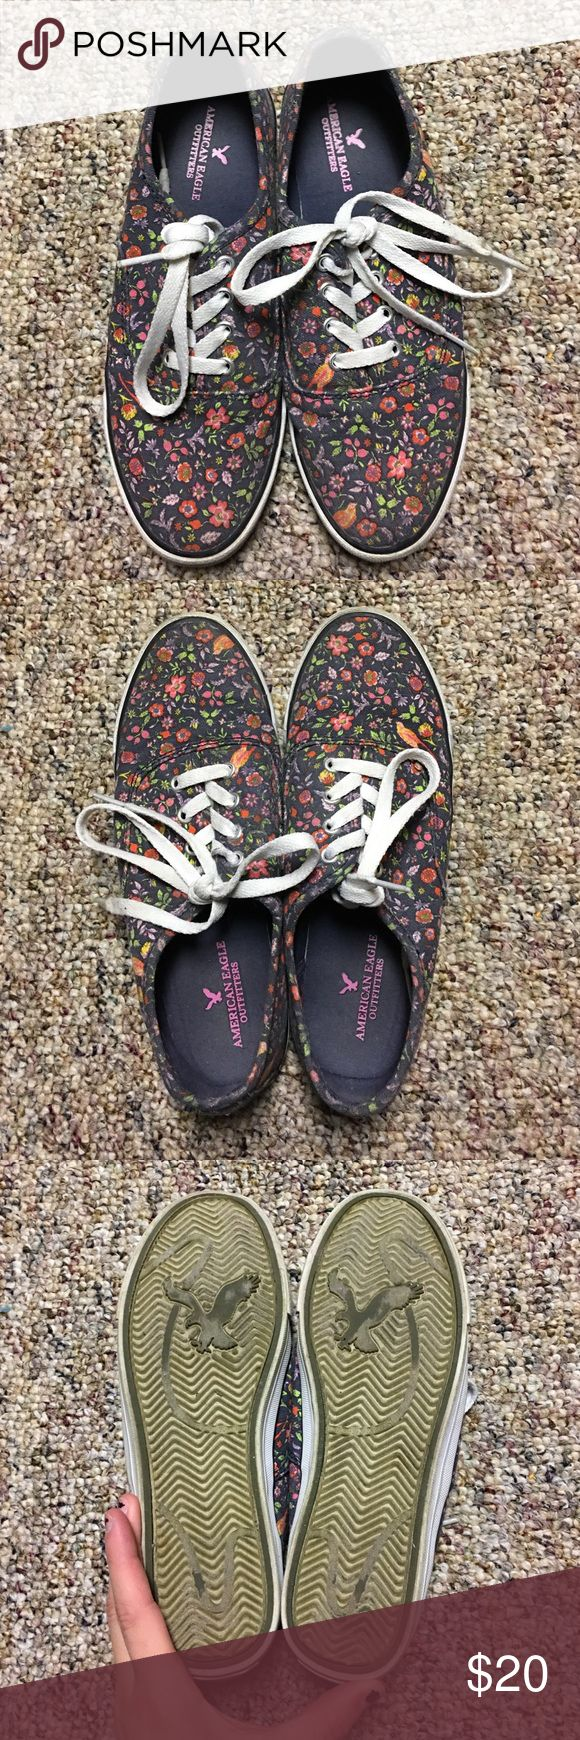 American Eagle Shoes American eagle shoes--similar to Vans, good condition! Accepting offers! American Eagle Outfitters Shoes Sneakers